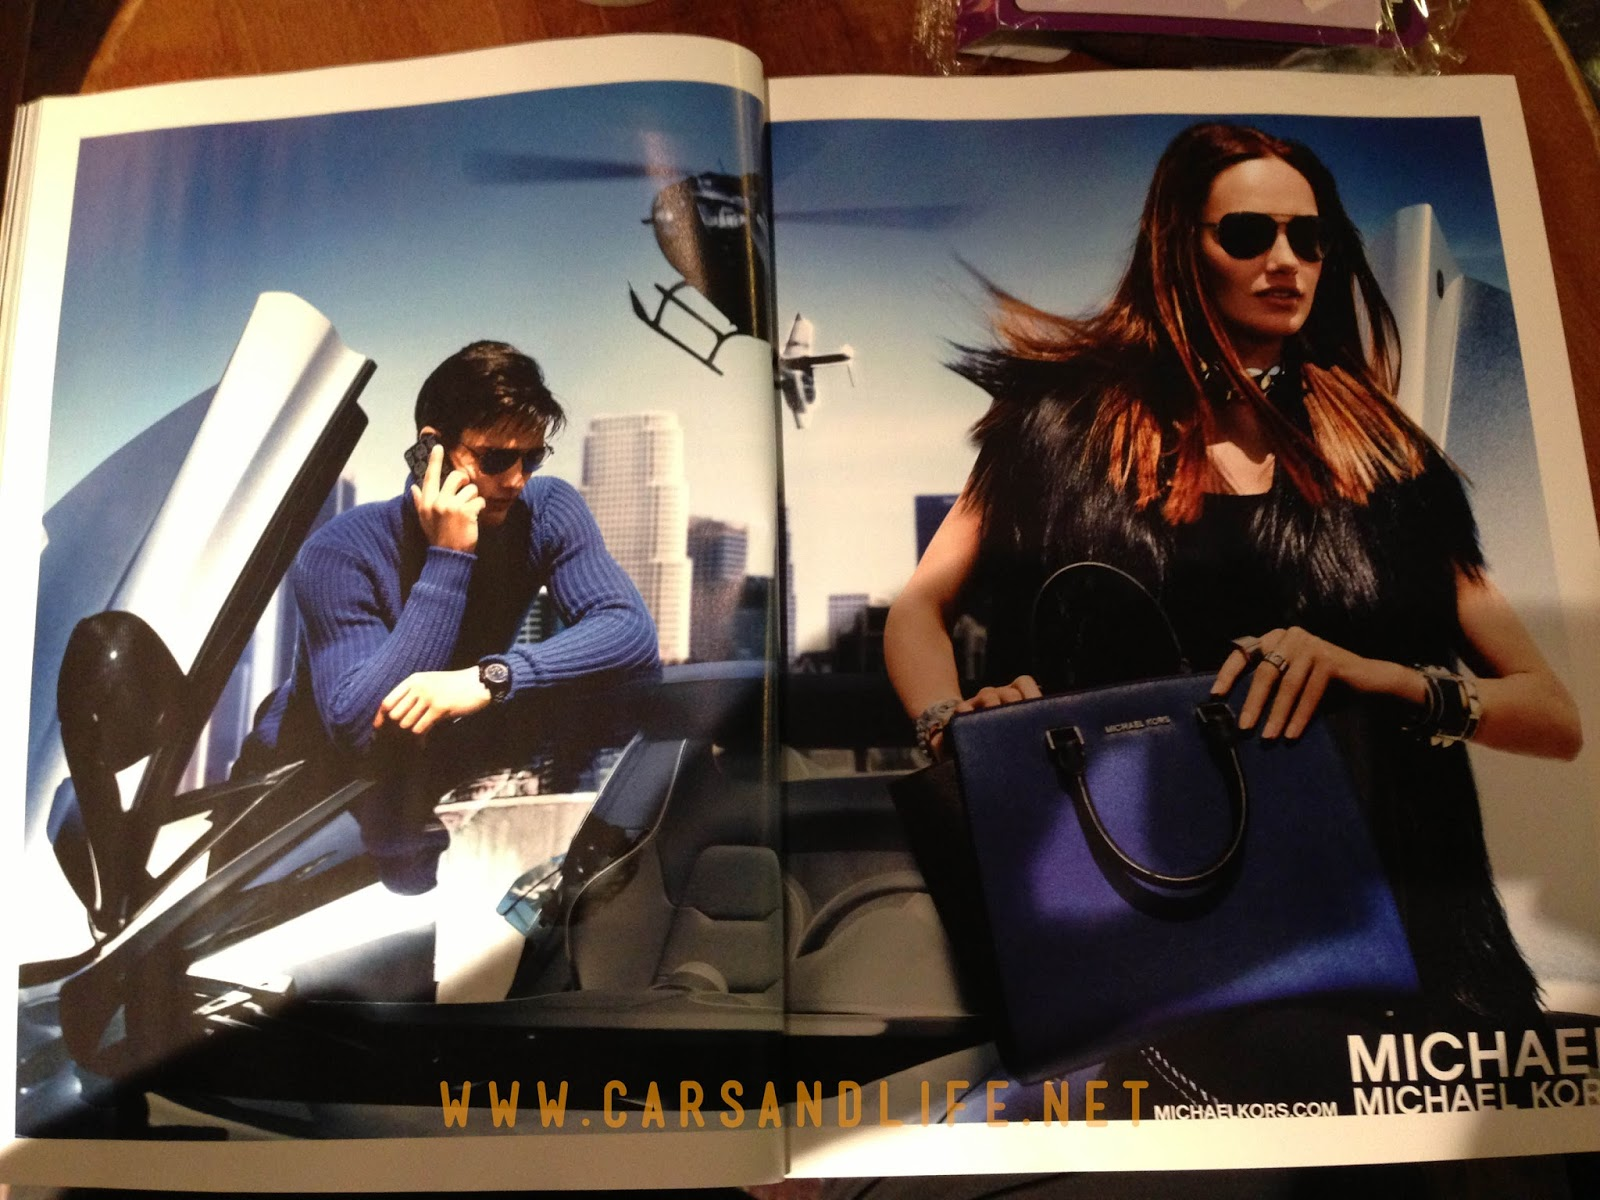 fashion designer michael kors l36d  Contemporary fashion designer Michael Kors recently published a new  advertisement on Elle, Vogue, Cosmopolitan and other fashion magazines